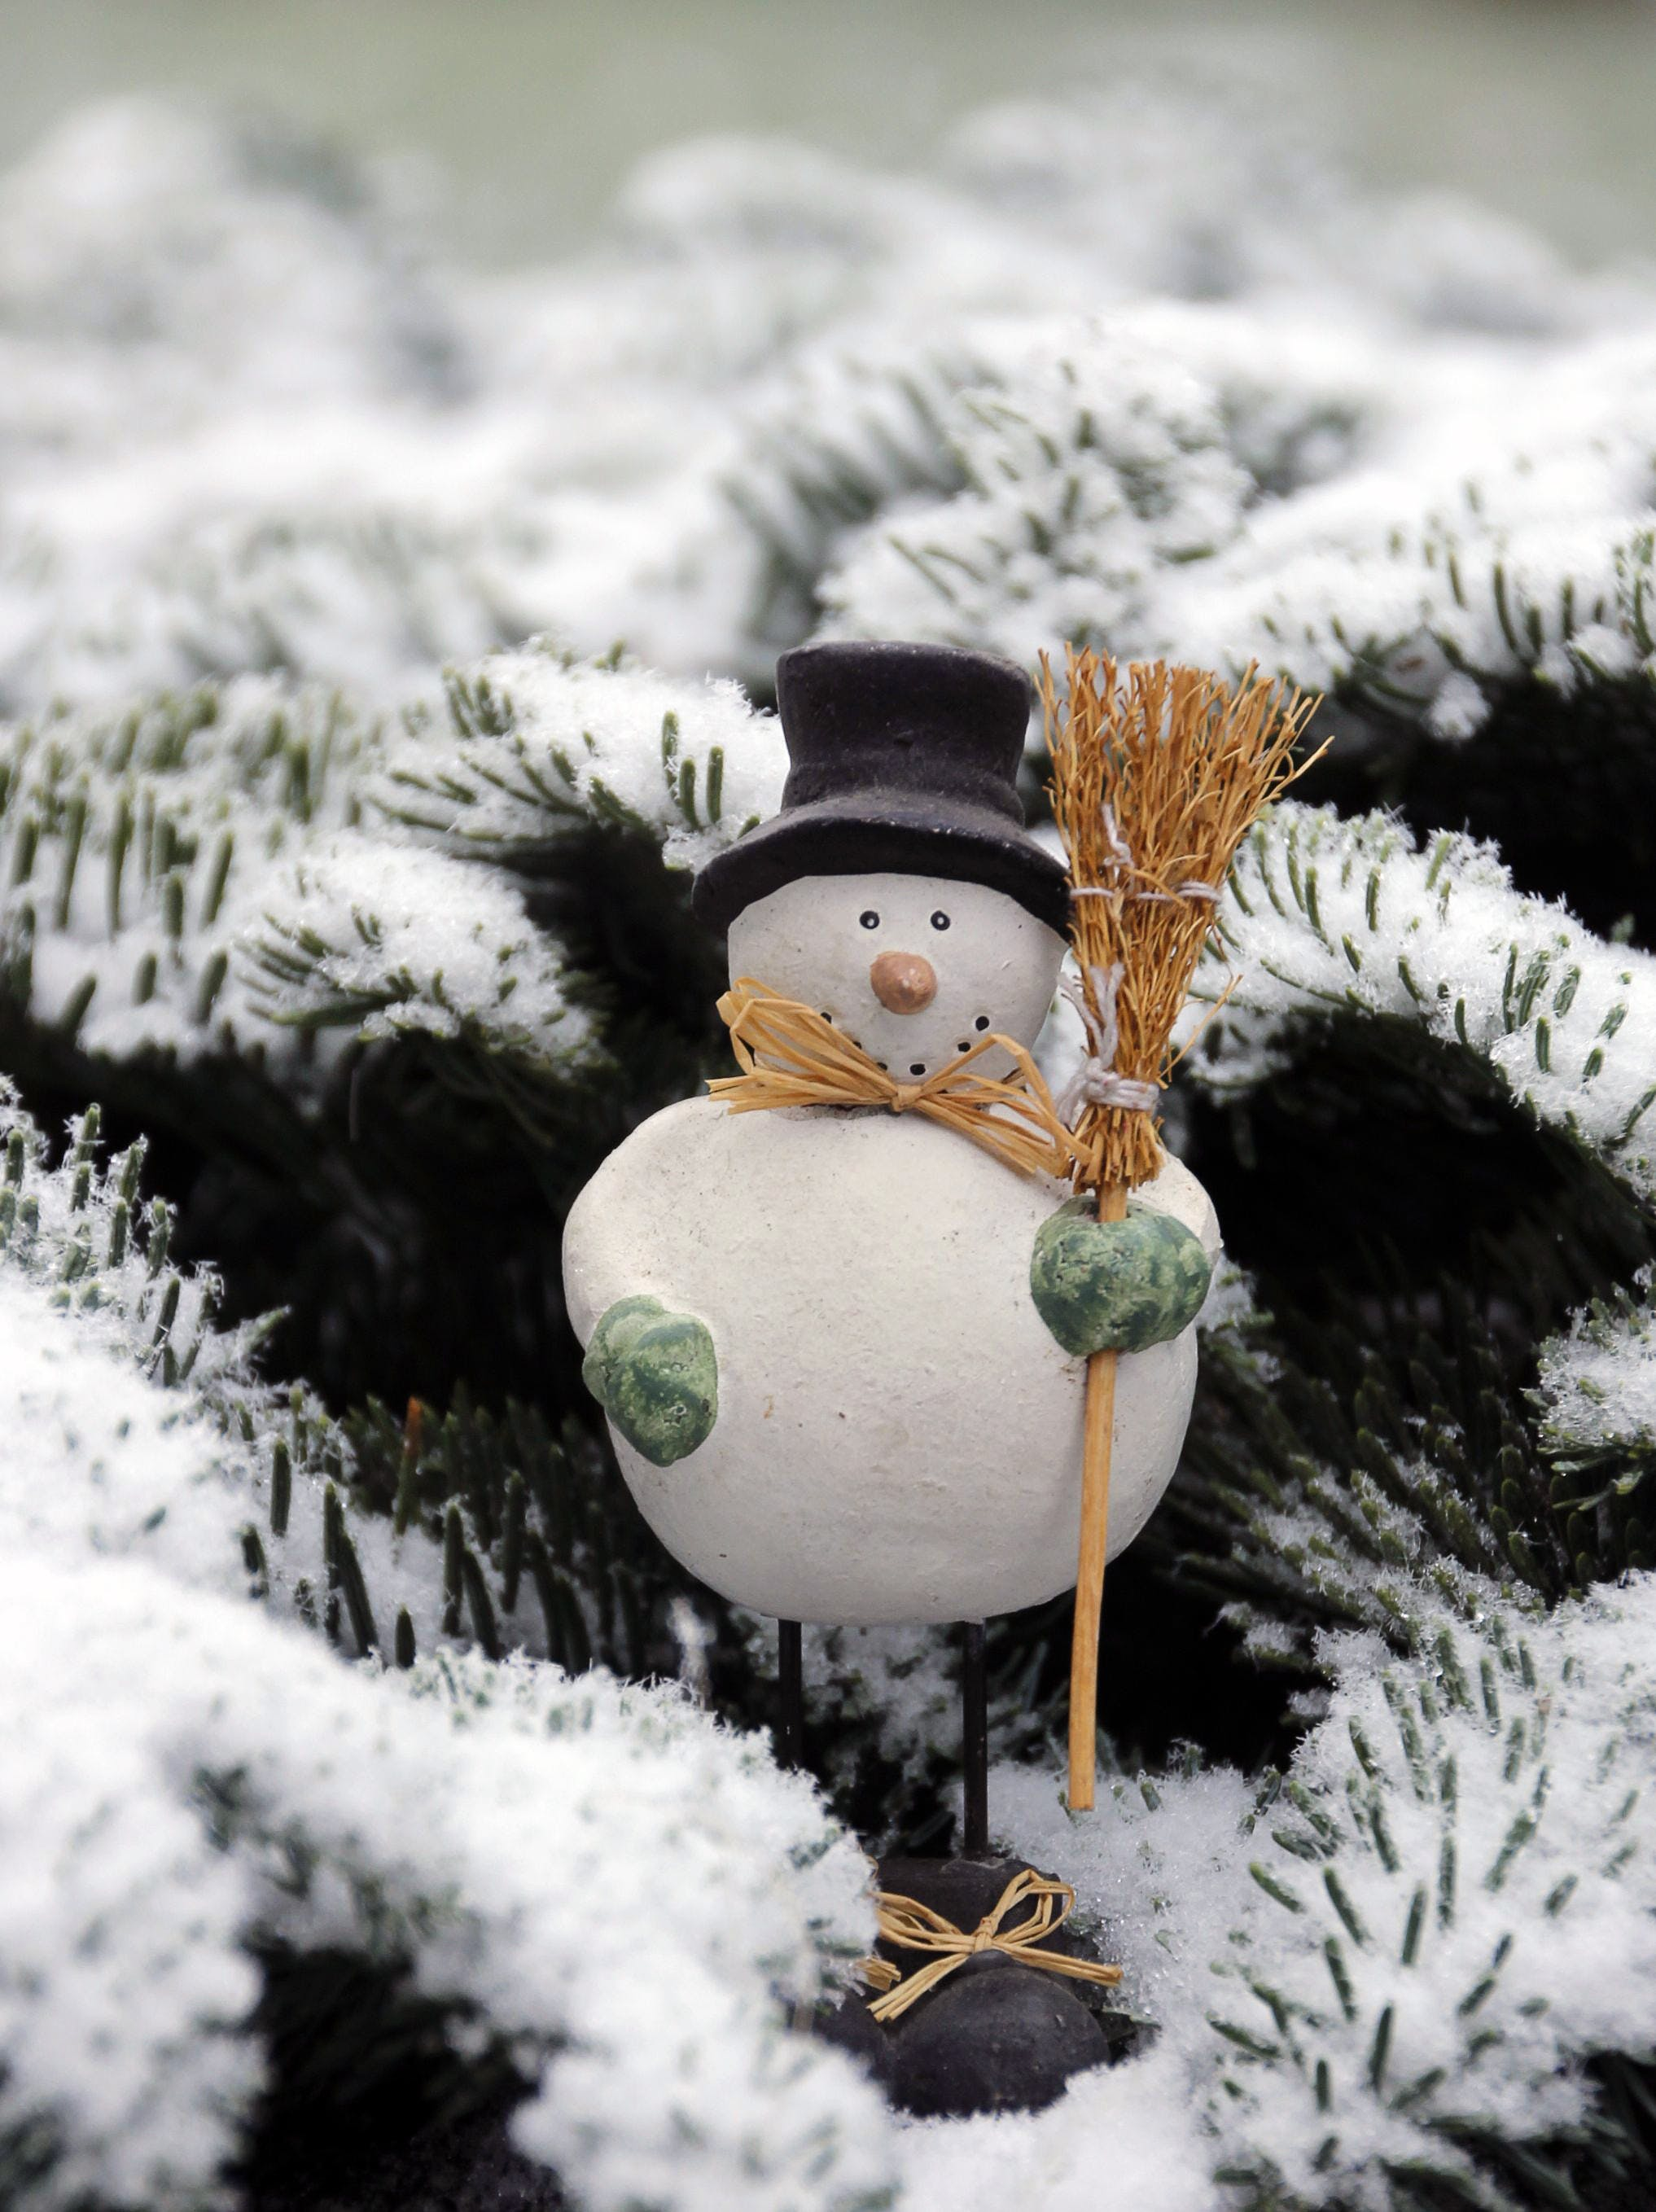 Snow Man Wearing Black Hat Holding Brown Broom